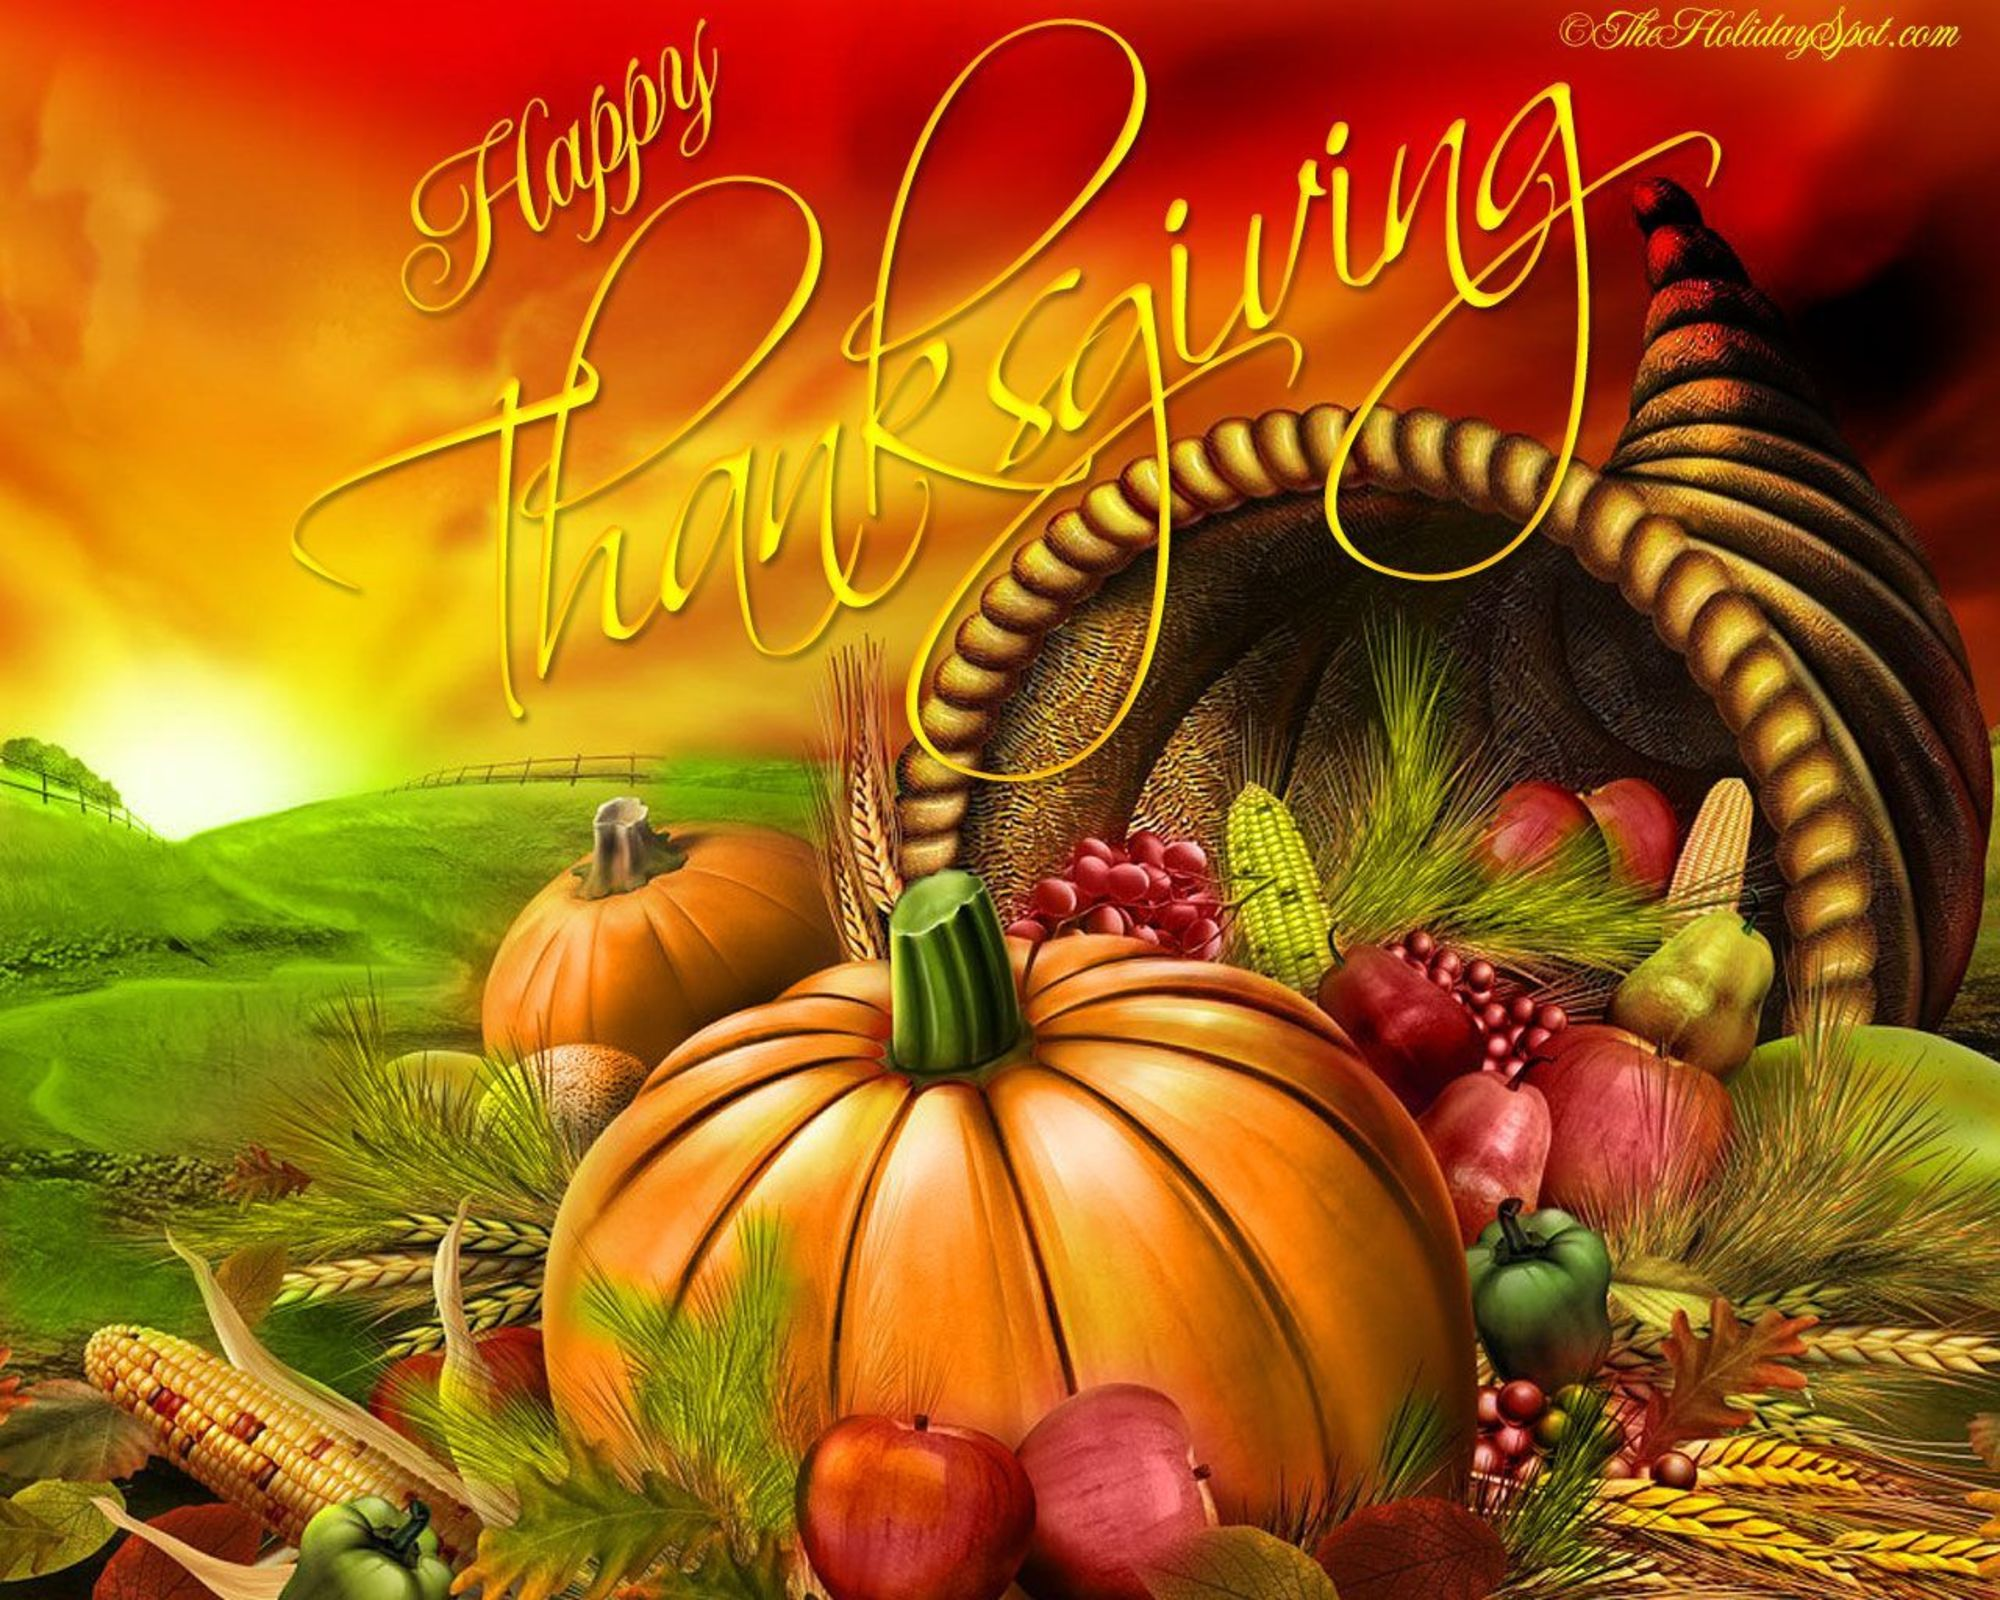 Happy Thanksgiving Wallpaper Background for Desktop 2000x1600